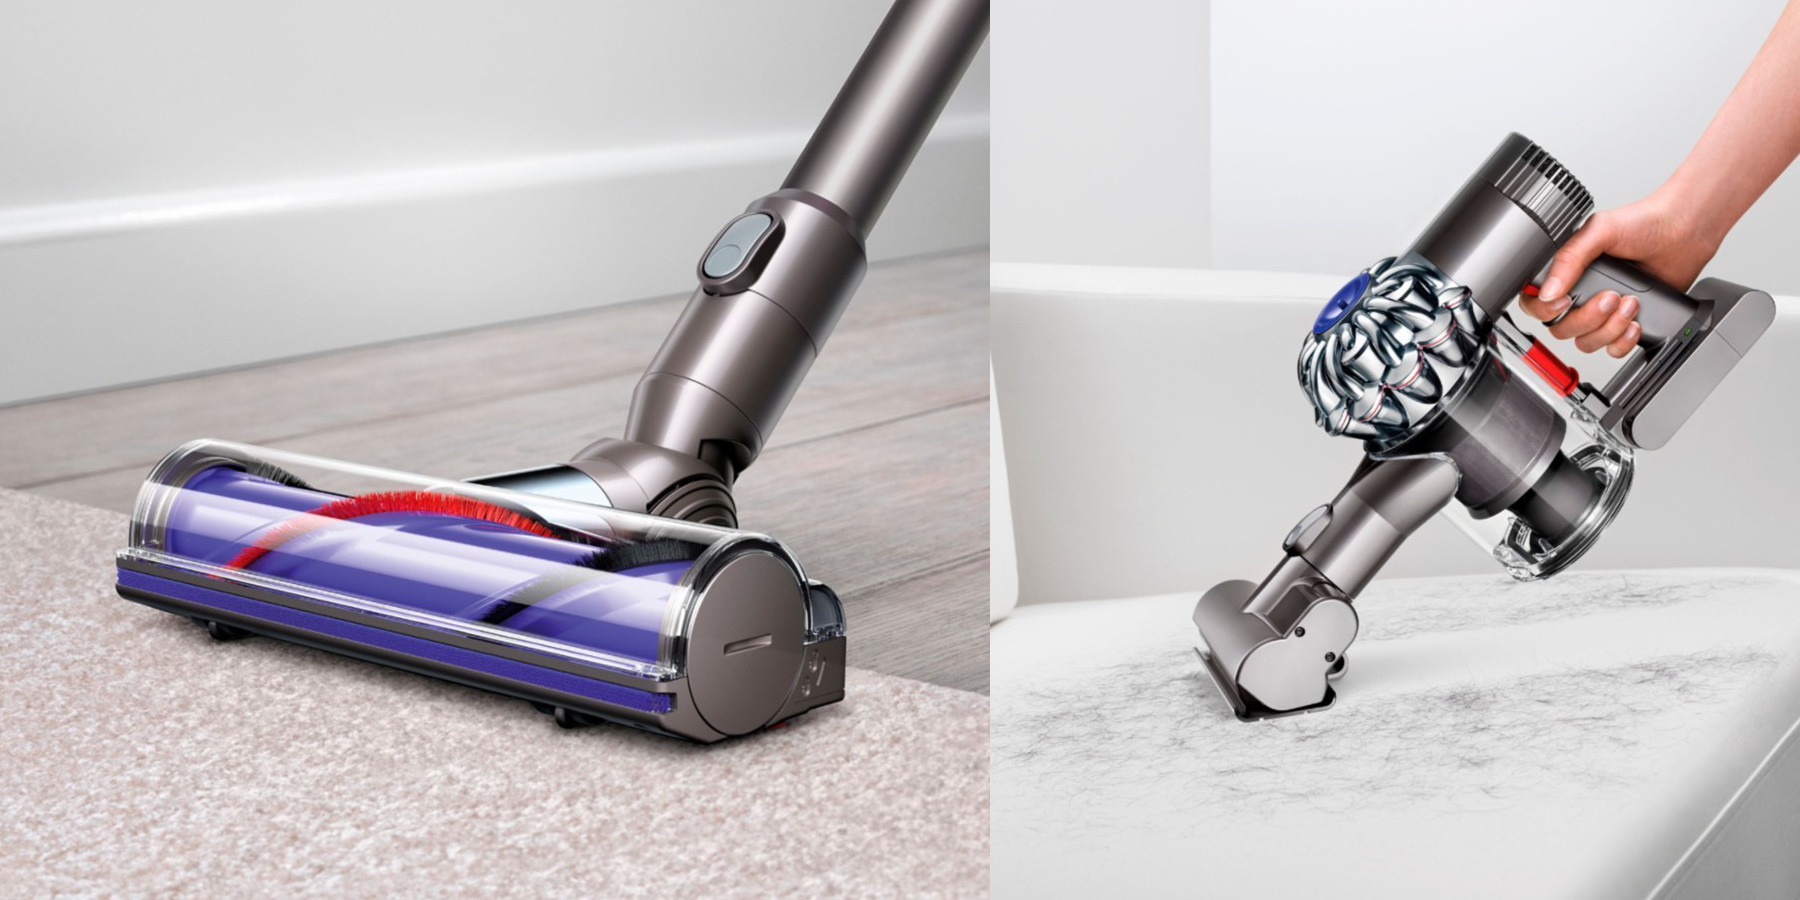 Image of: Cordless Handheld Dyson V6 Animal Cordless Stick Vac Drops To 200 For Today Only reg 280 9to5toys Dyson V6 Animal Cordless Stick Vac Drops To 200 For Today Only reg